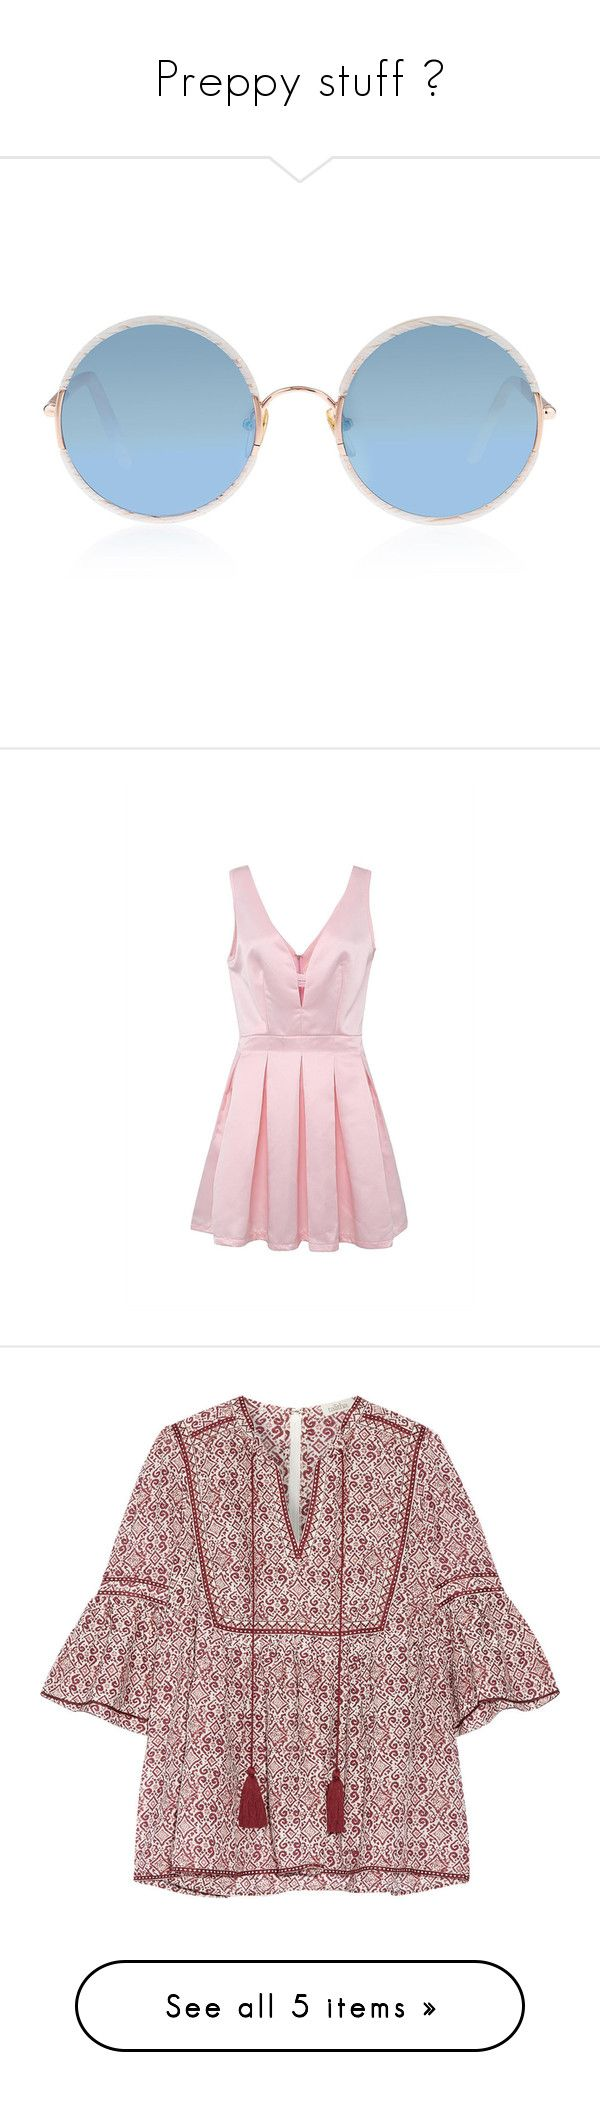 """""""Preppy stuff 😋"""" by raee590 ❤ liked on Polyvore featuring dresses, pink, pink v neck dress, plunge dress, fancy dress, strappy dress, pink skater dress, tops, blouses and shirts"""